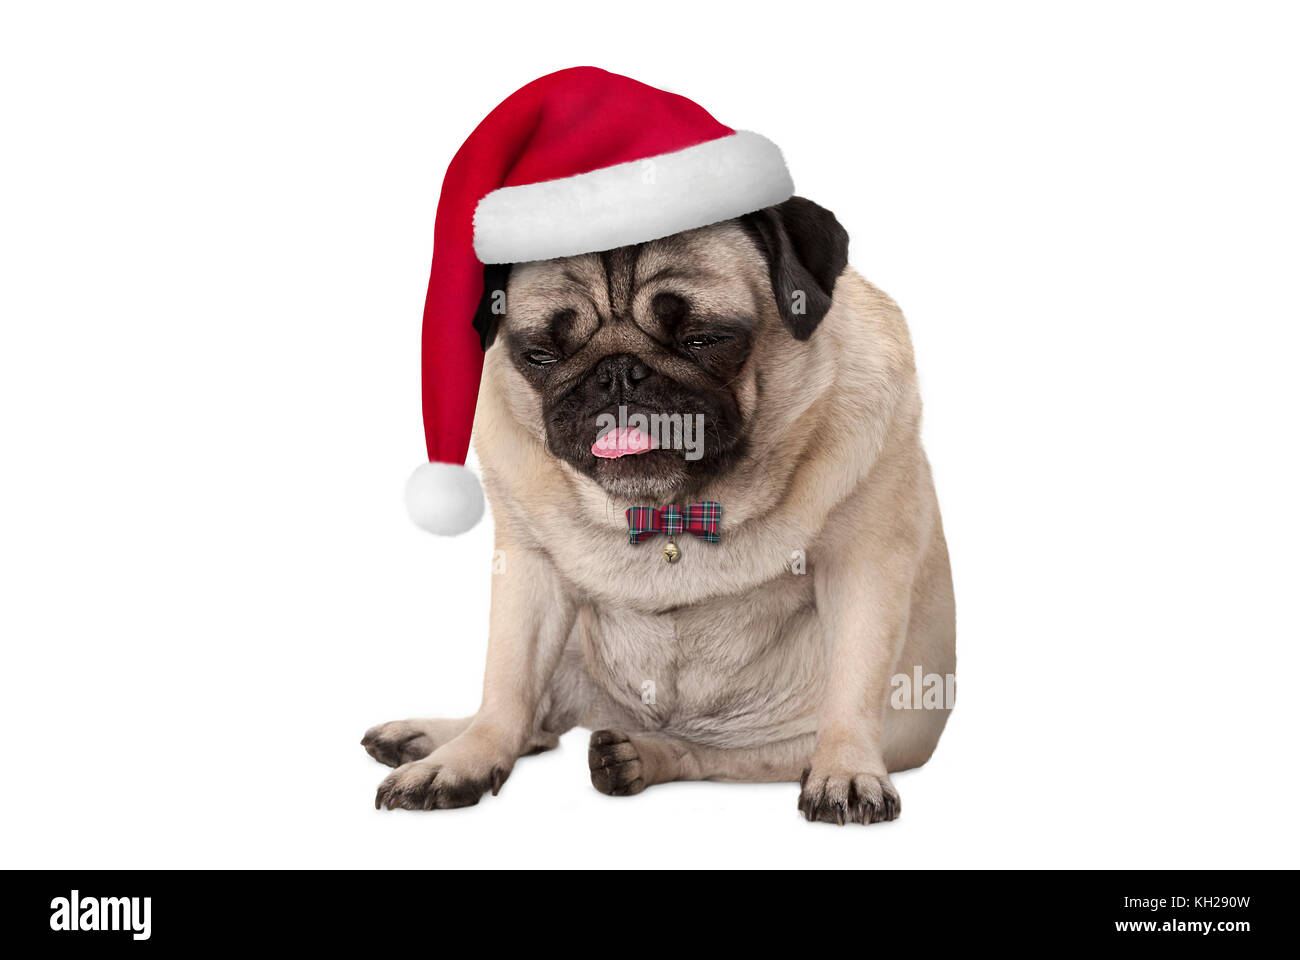 funny grumpy faced pug puppy dog with red santa hat for Christmas sitting down, isolated on white background - Stock Image